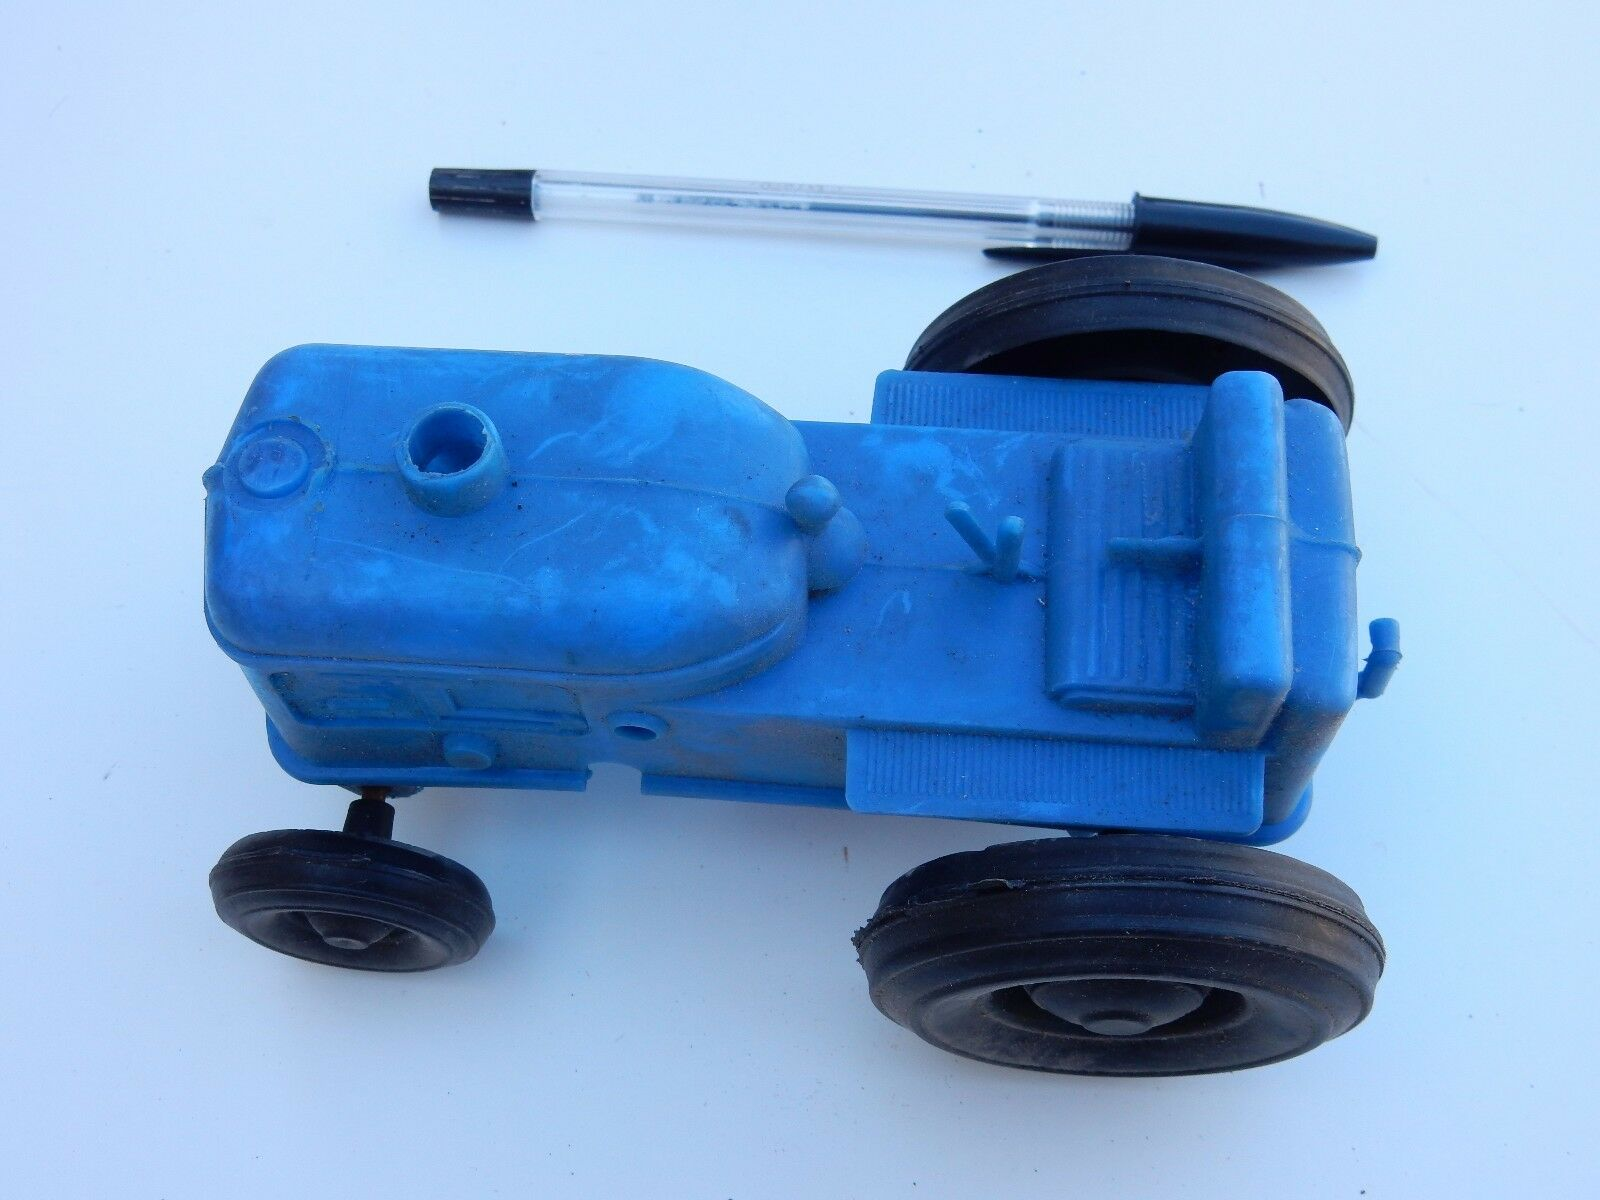 Toy roll along  TRACTOR   EARLY 1950s plastic  14 X 7 X 7 cm great display piece